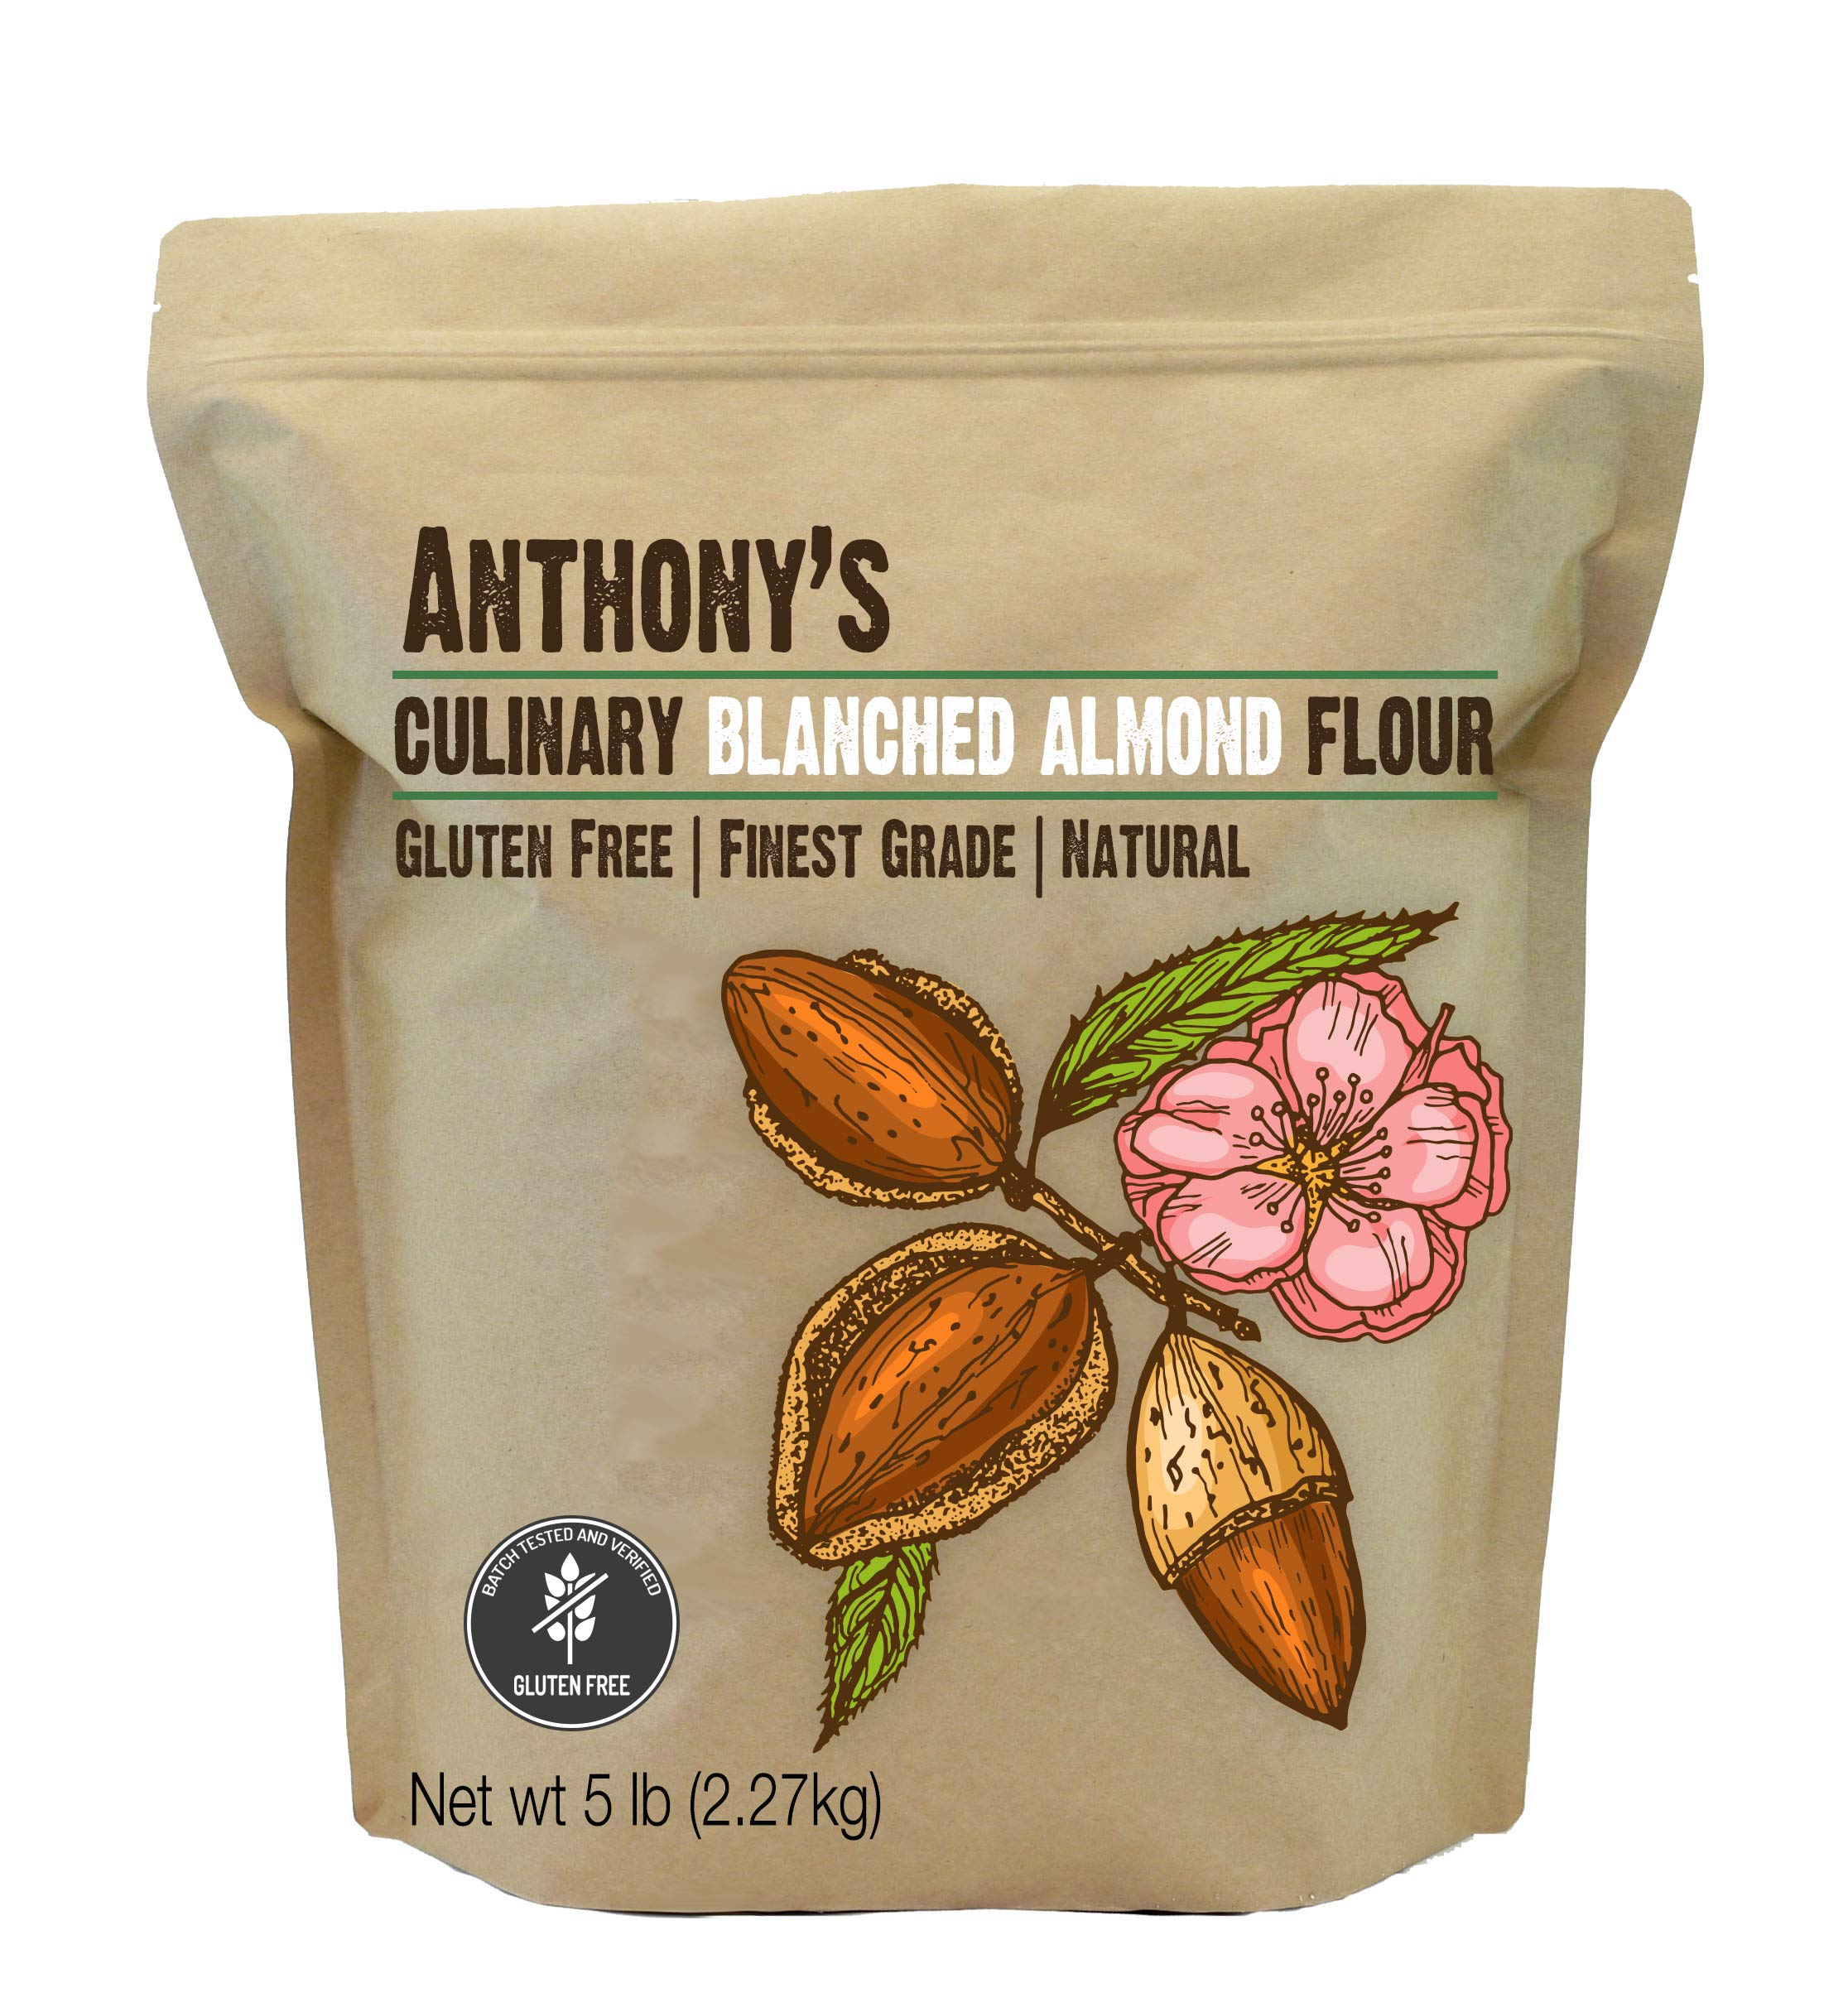 Anthony's Almond Flour Blanched Culinary Grade, 5lbs, Batch Tested and Gluten Free, Keto Friendly by Anthony's